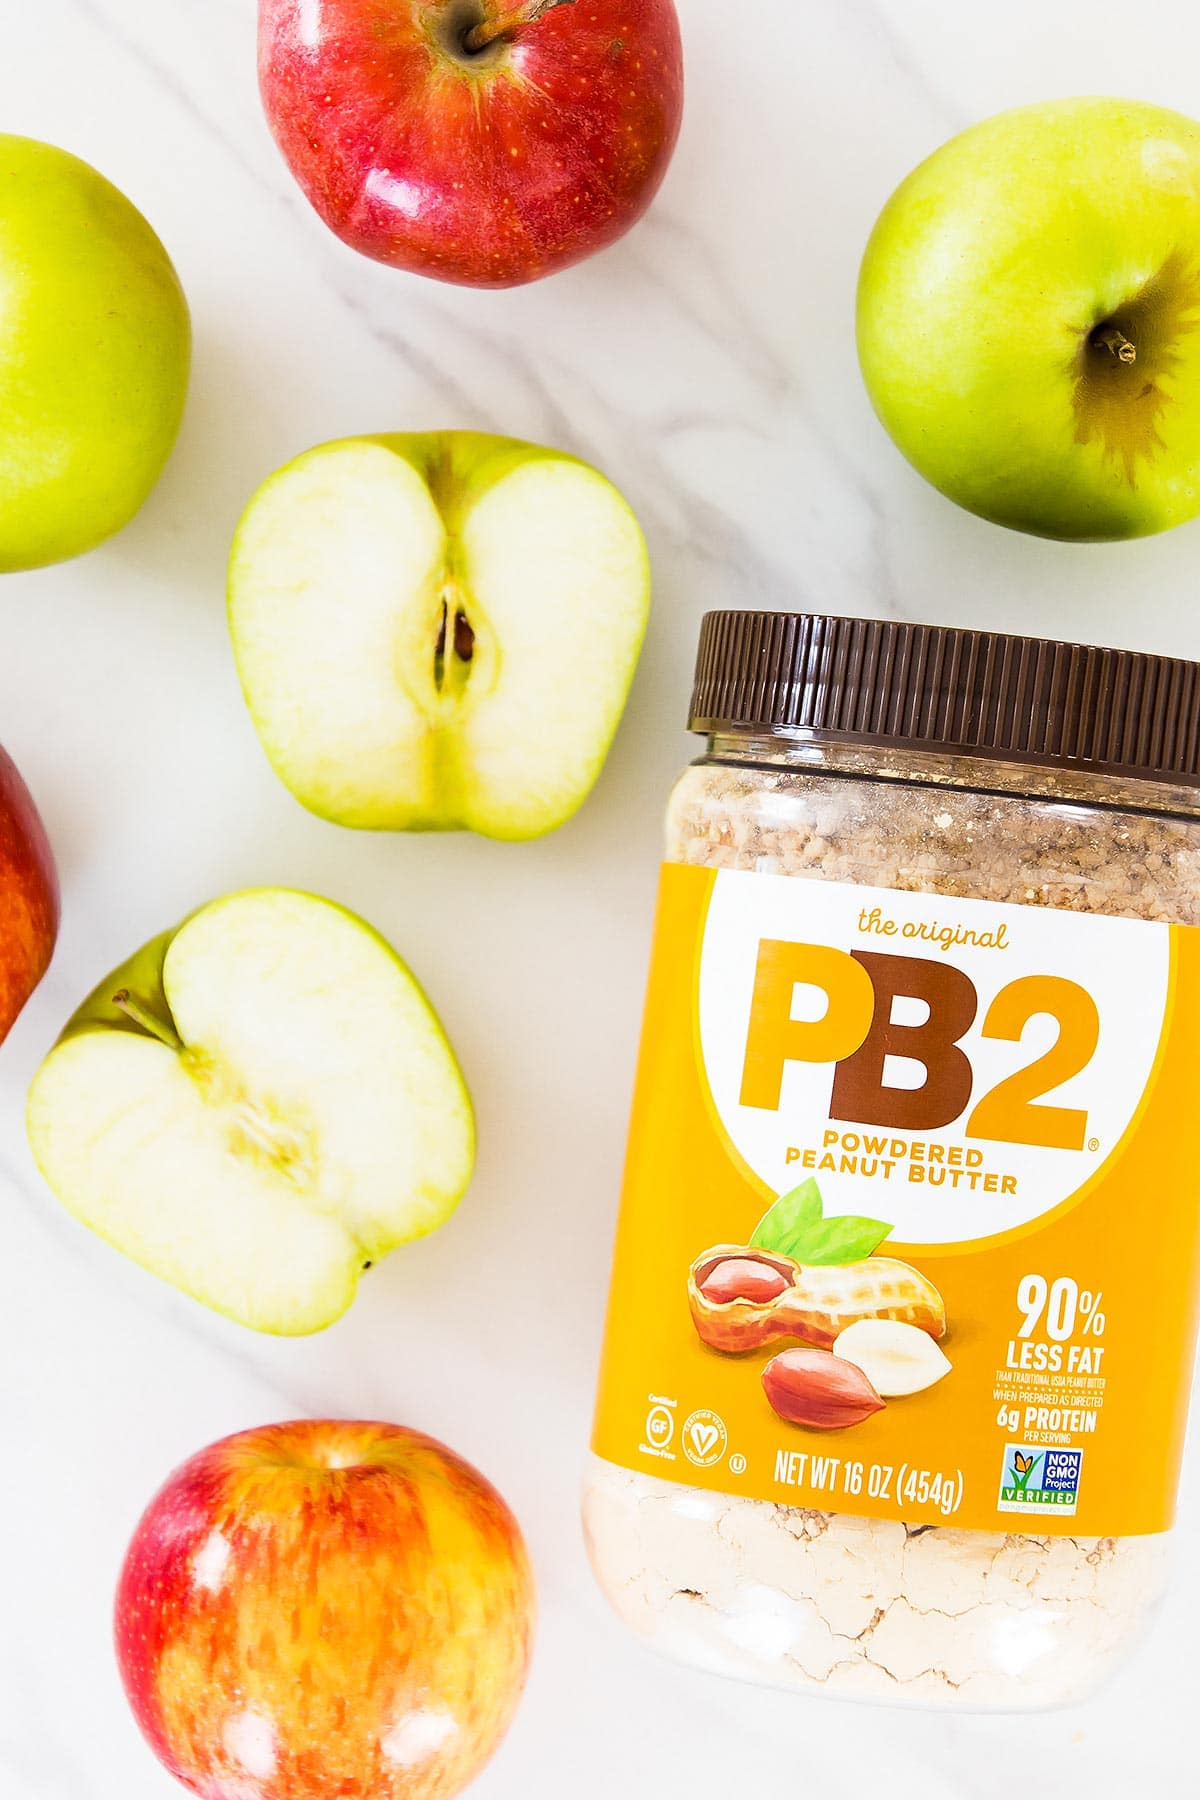 PB2 peanut butter powder and apples